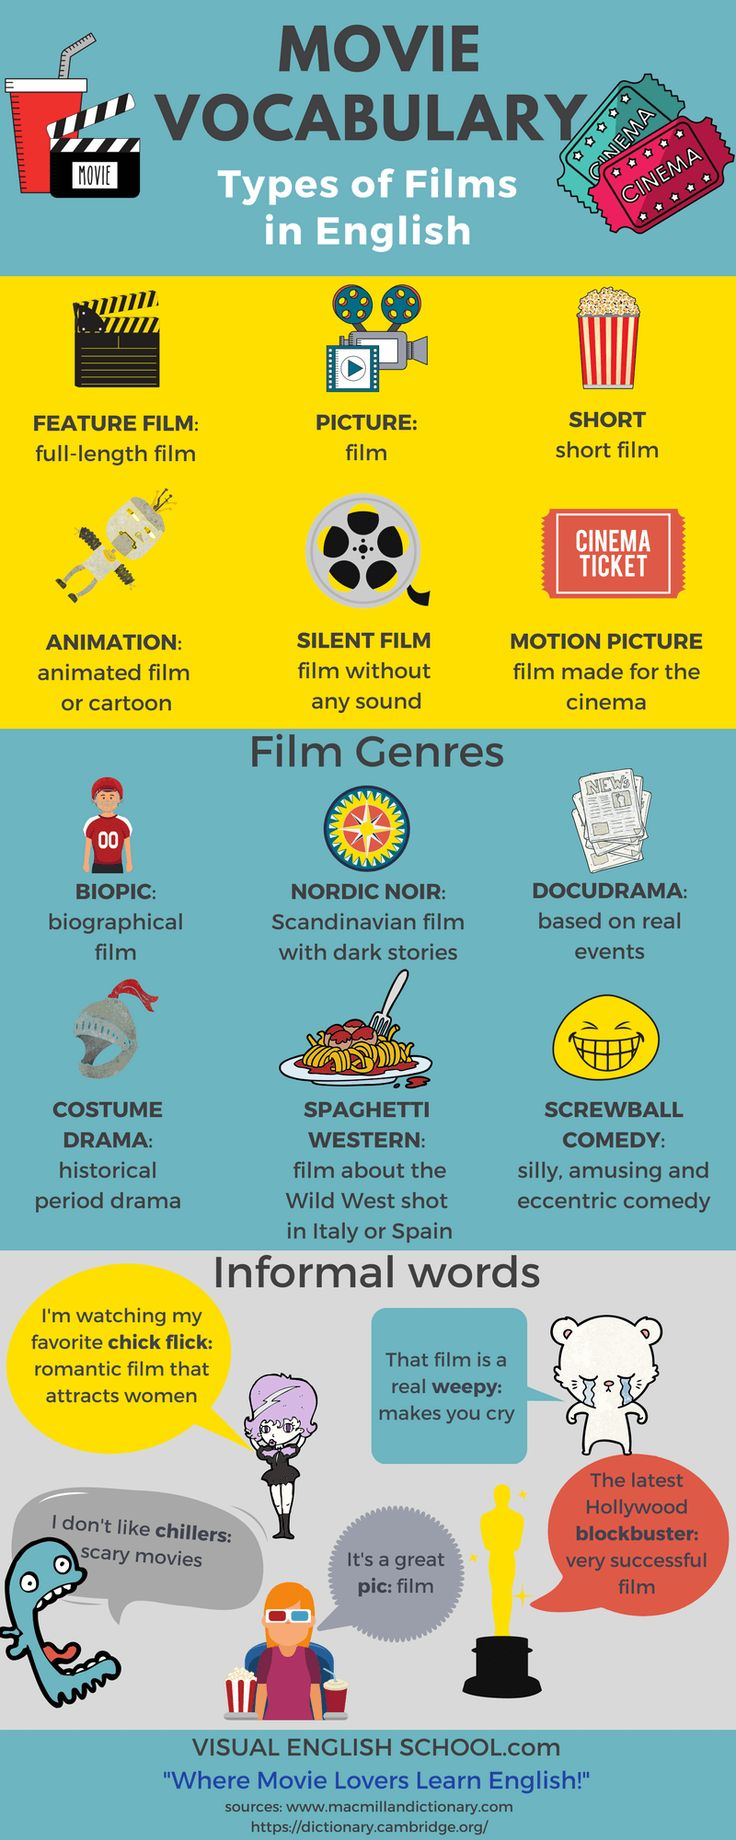 Learn Movie Vocabulary in English: Types of films and film genres.